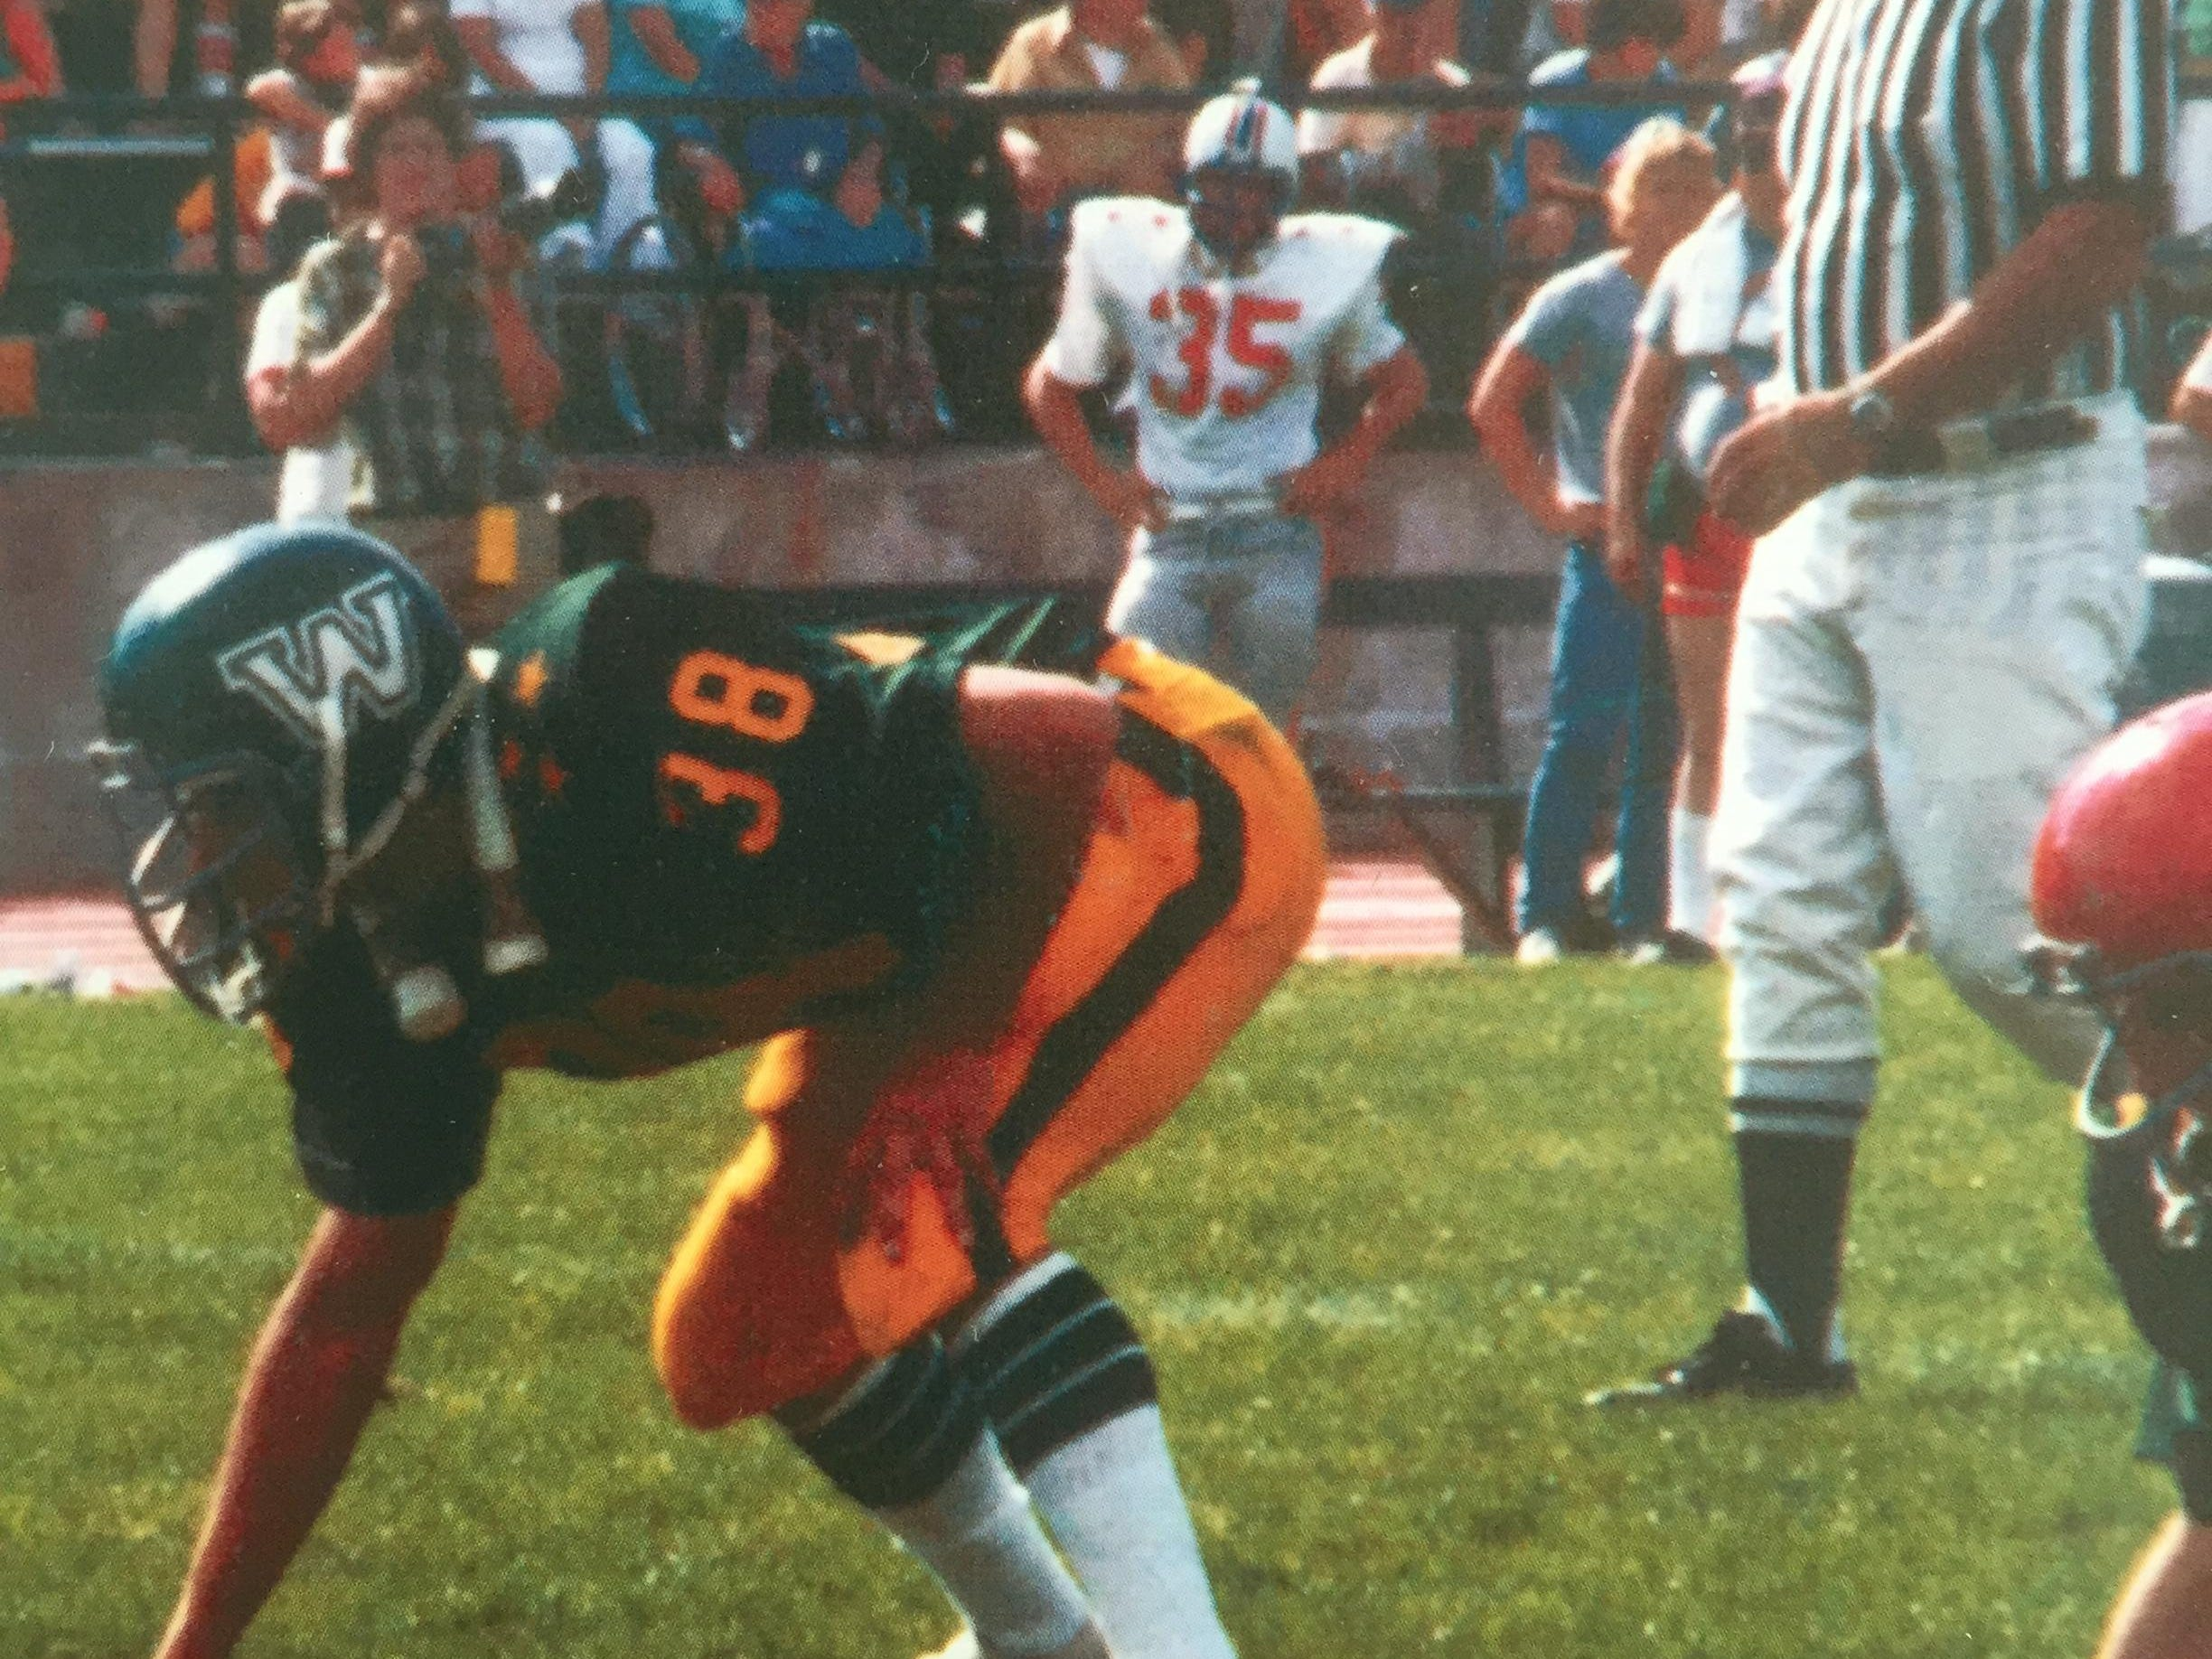 Glenn Cummings played in the 1980 Shrine Maple Sugar Bowl at Dartmouth College. His son, Grant, a Colchester standout, will represent the Cummings family and Vermont at Saturday's game.